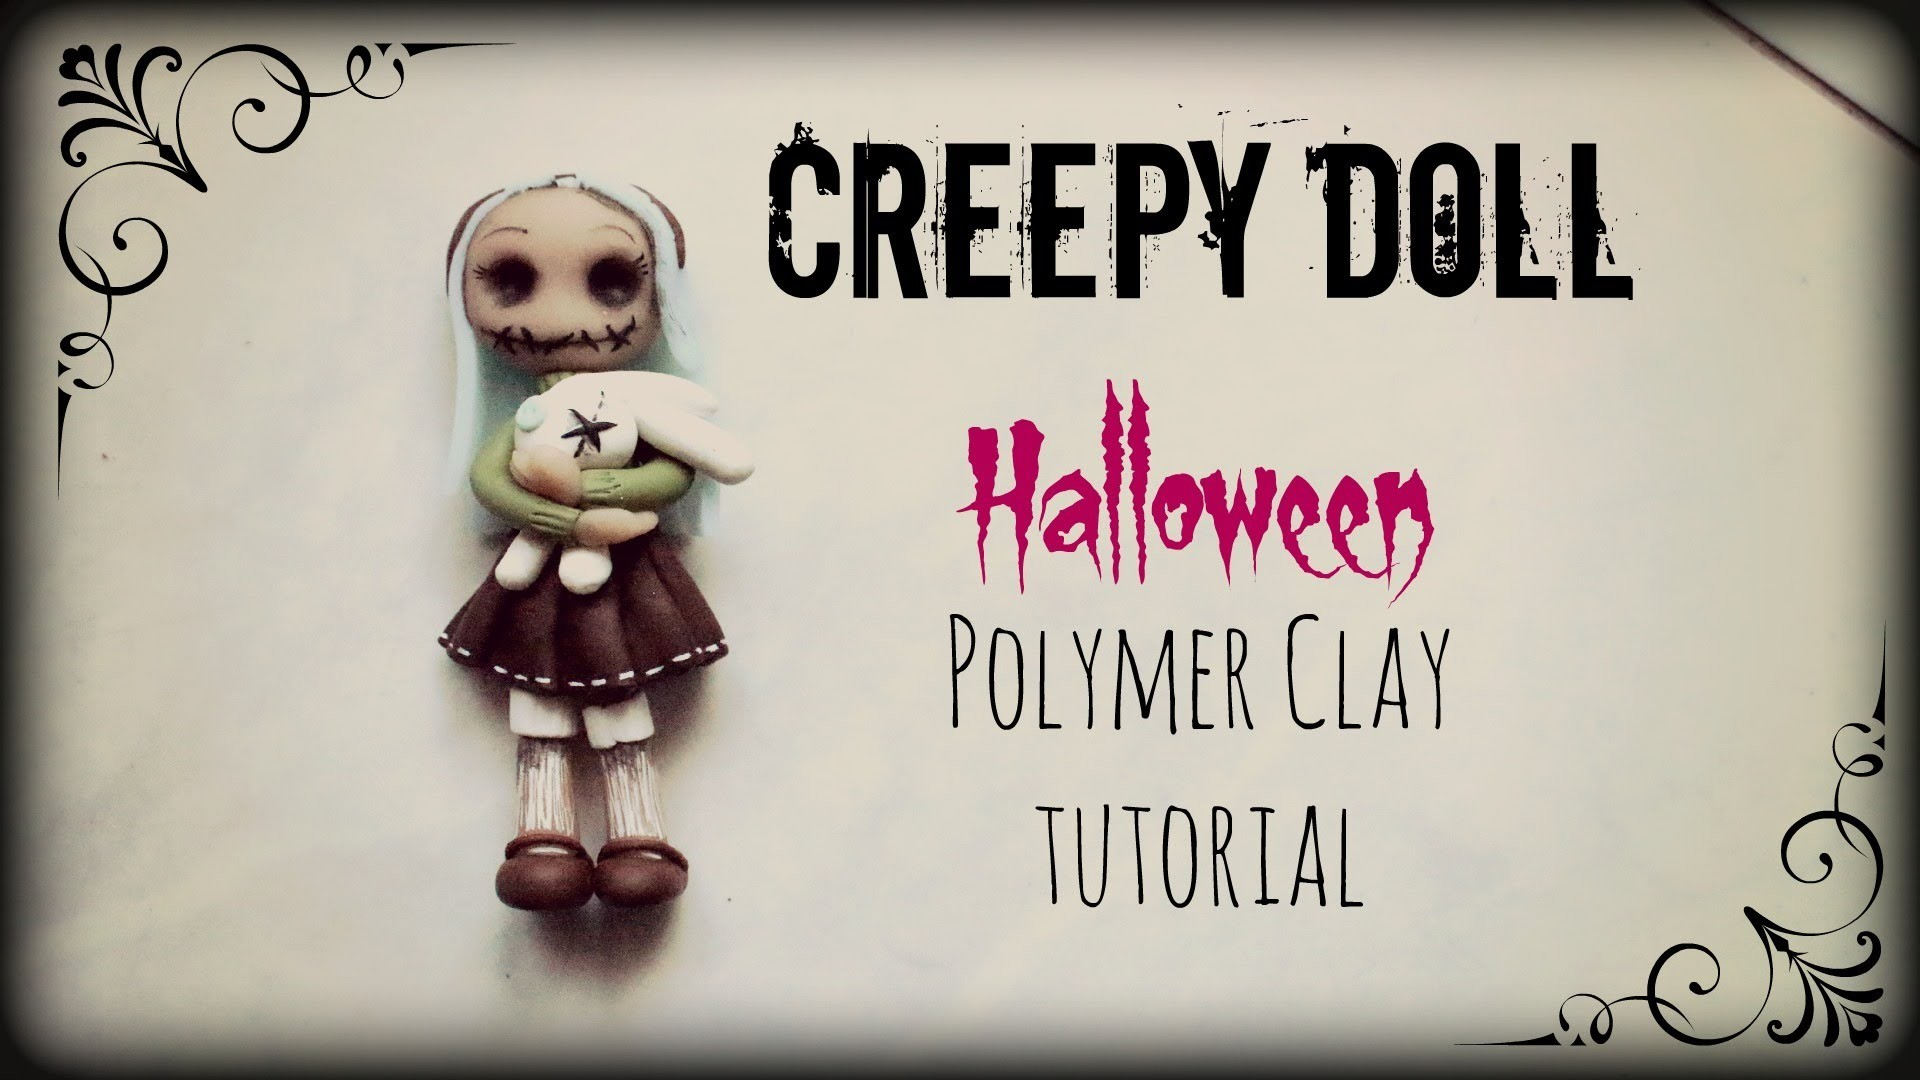 Creepy Doll ▪ Halloween ▪ Polymer Clay tutorial